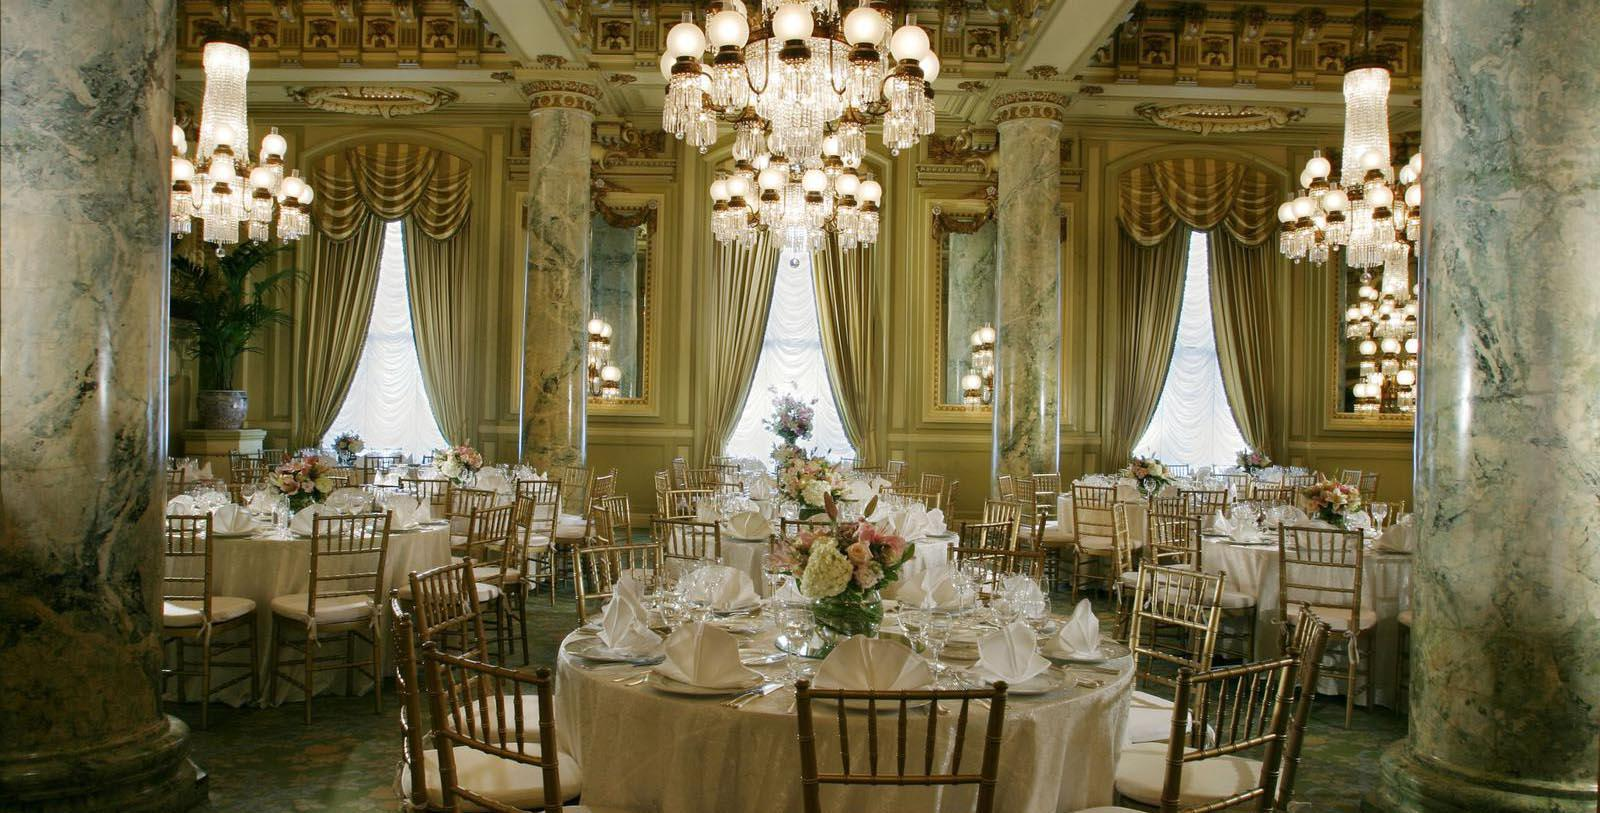 Image of Meeting Room ballroom The Willard InterContinental, Washington DC, 1847, Member of Historic Hotels of America, Experience